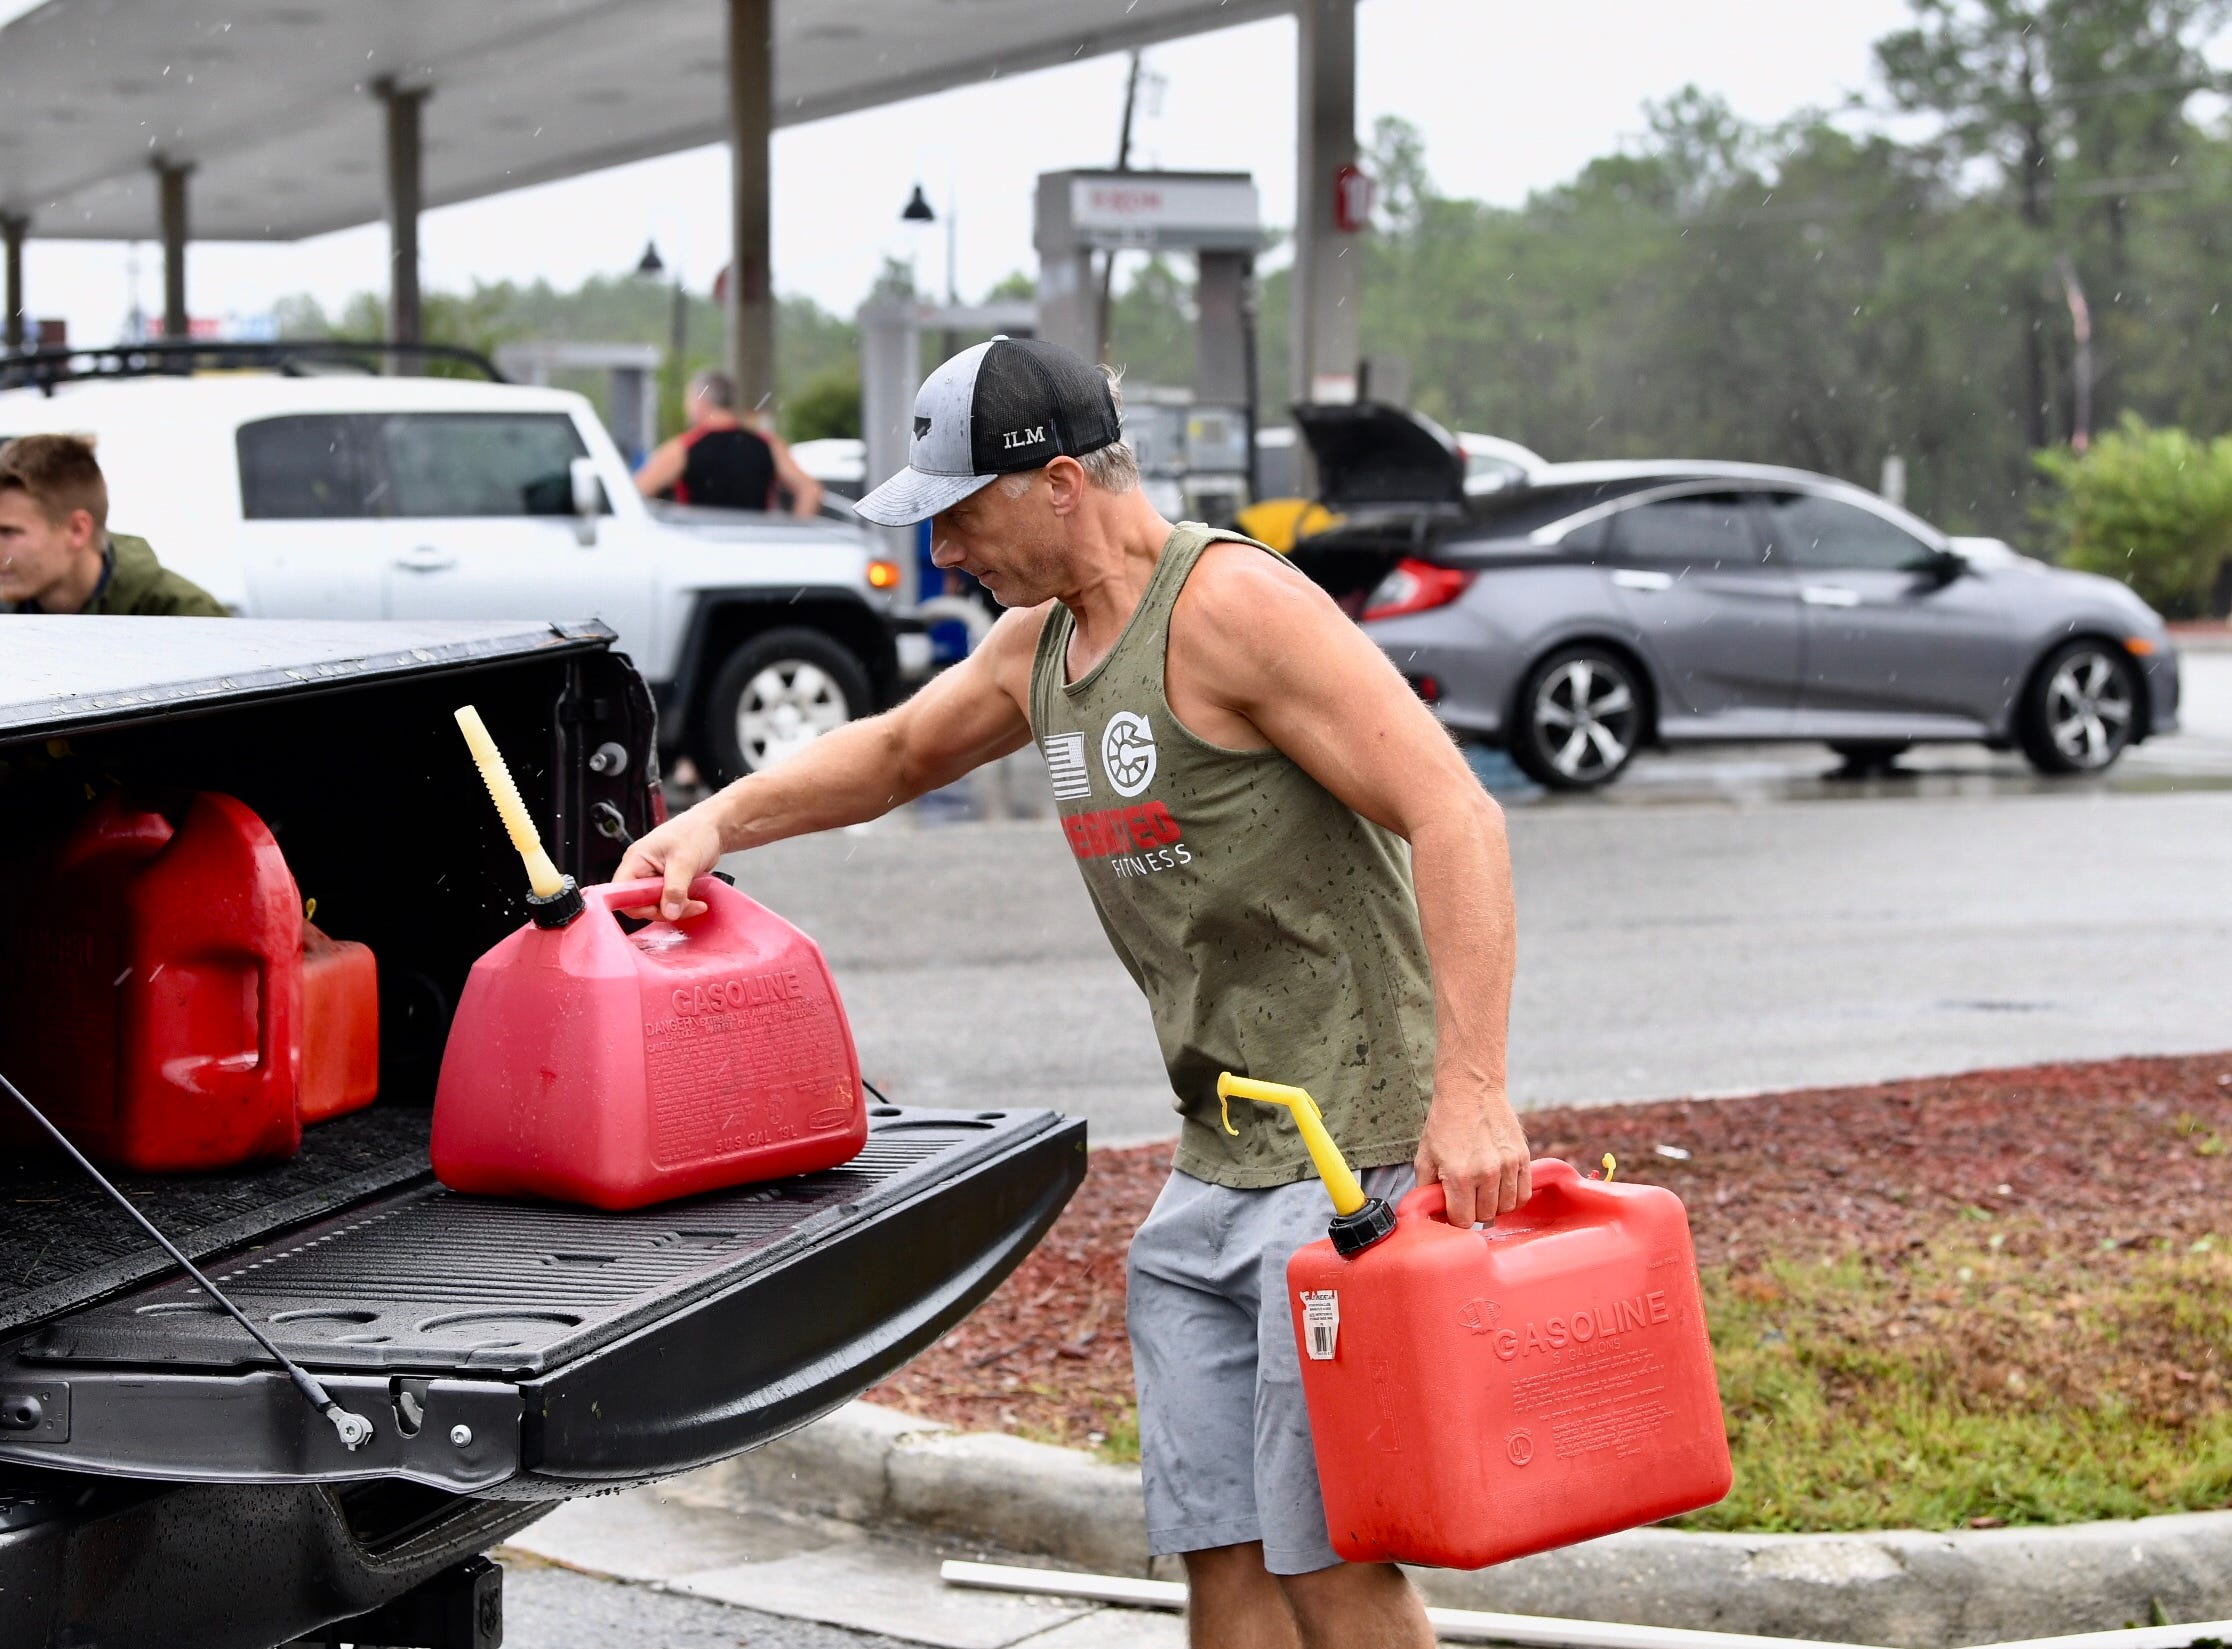 Blair Young loads up his gas at Candy's Exxon in Wilmington on Saturday, Sept. 15, 2018.